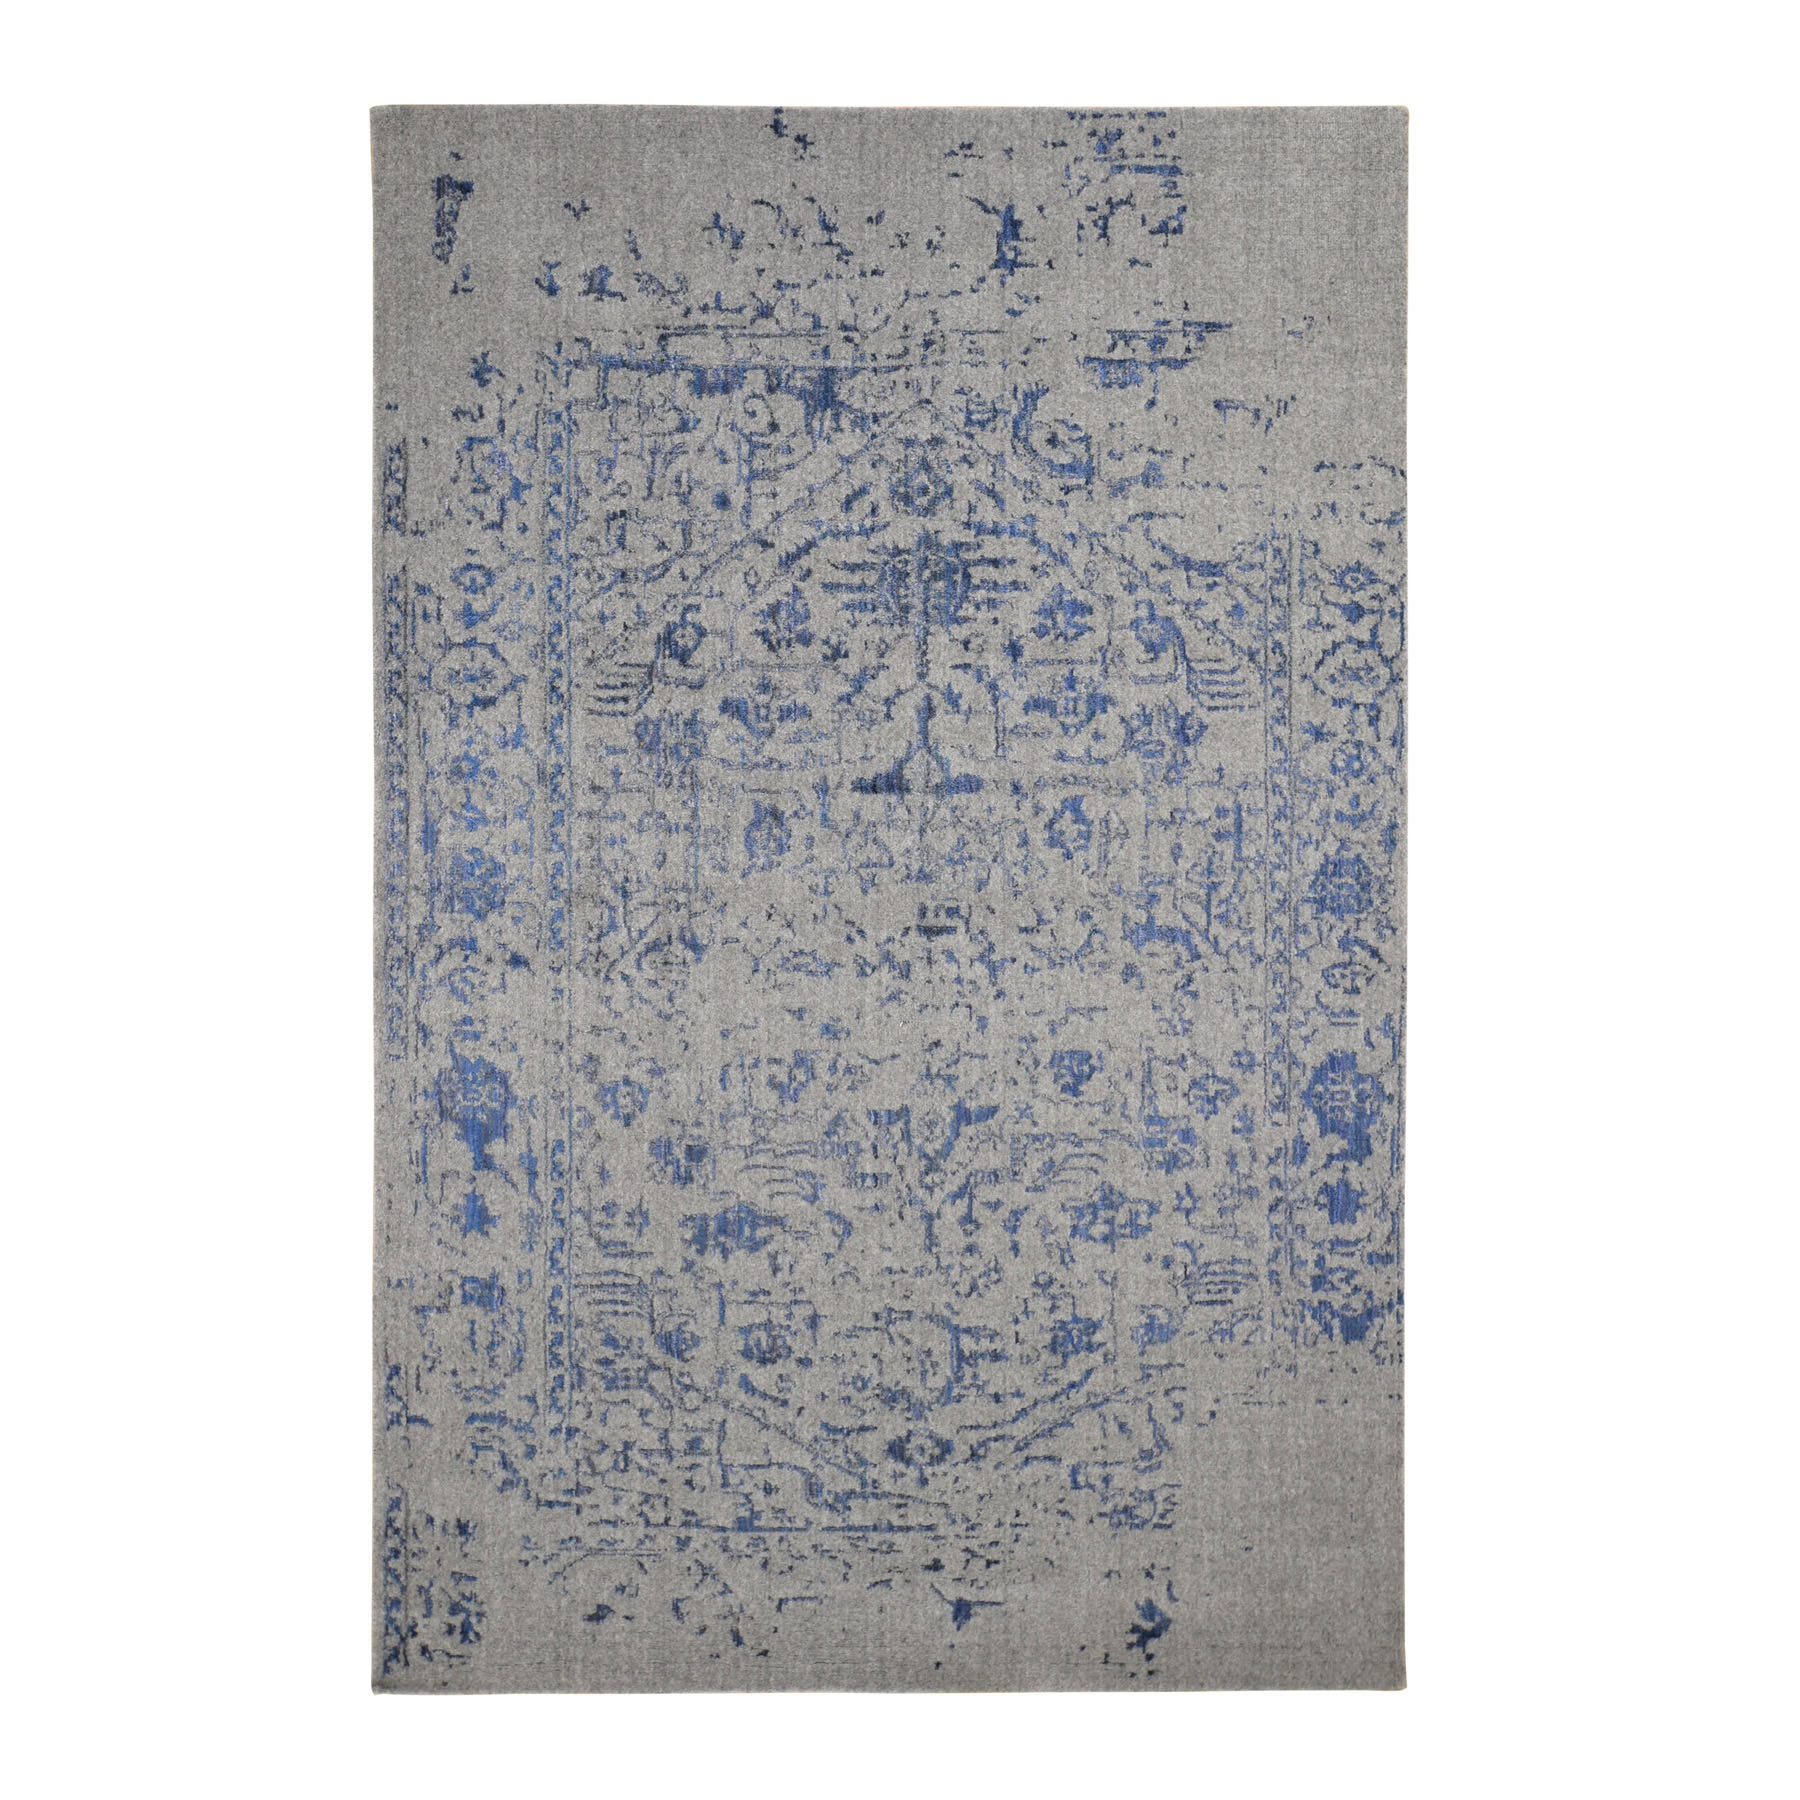 6'X9' Jacquard Hand Loomed With Broken Persian Heriz Design Blue Oriental Rug moad8d96